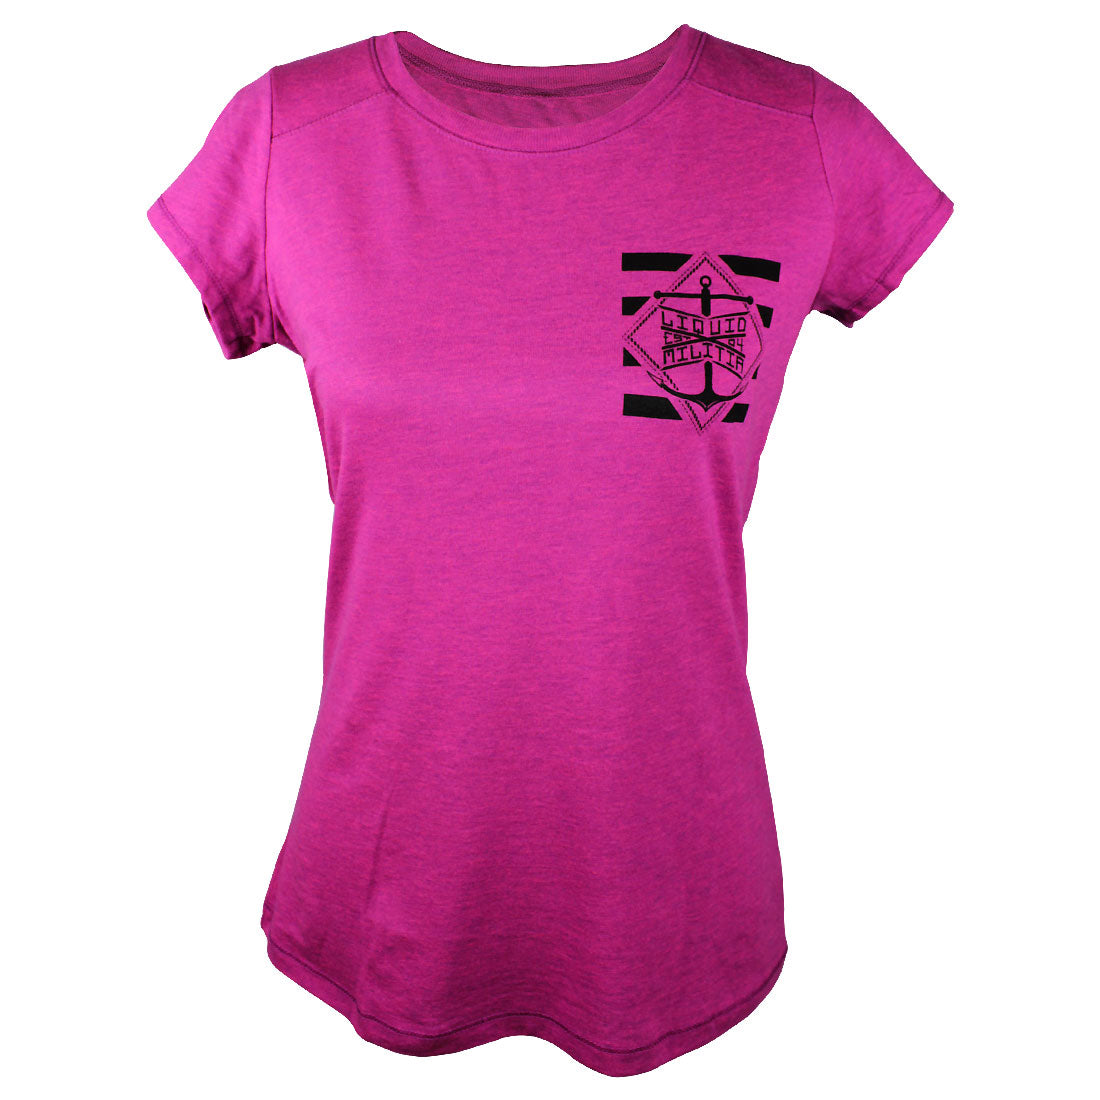 Jetty Girls Tee in Pink Heather